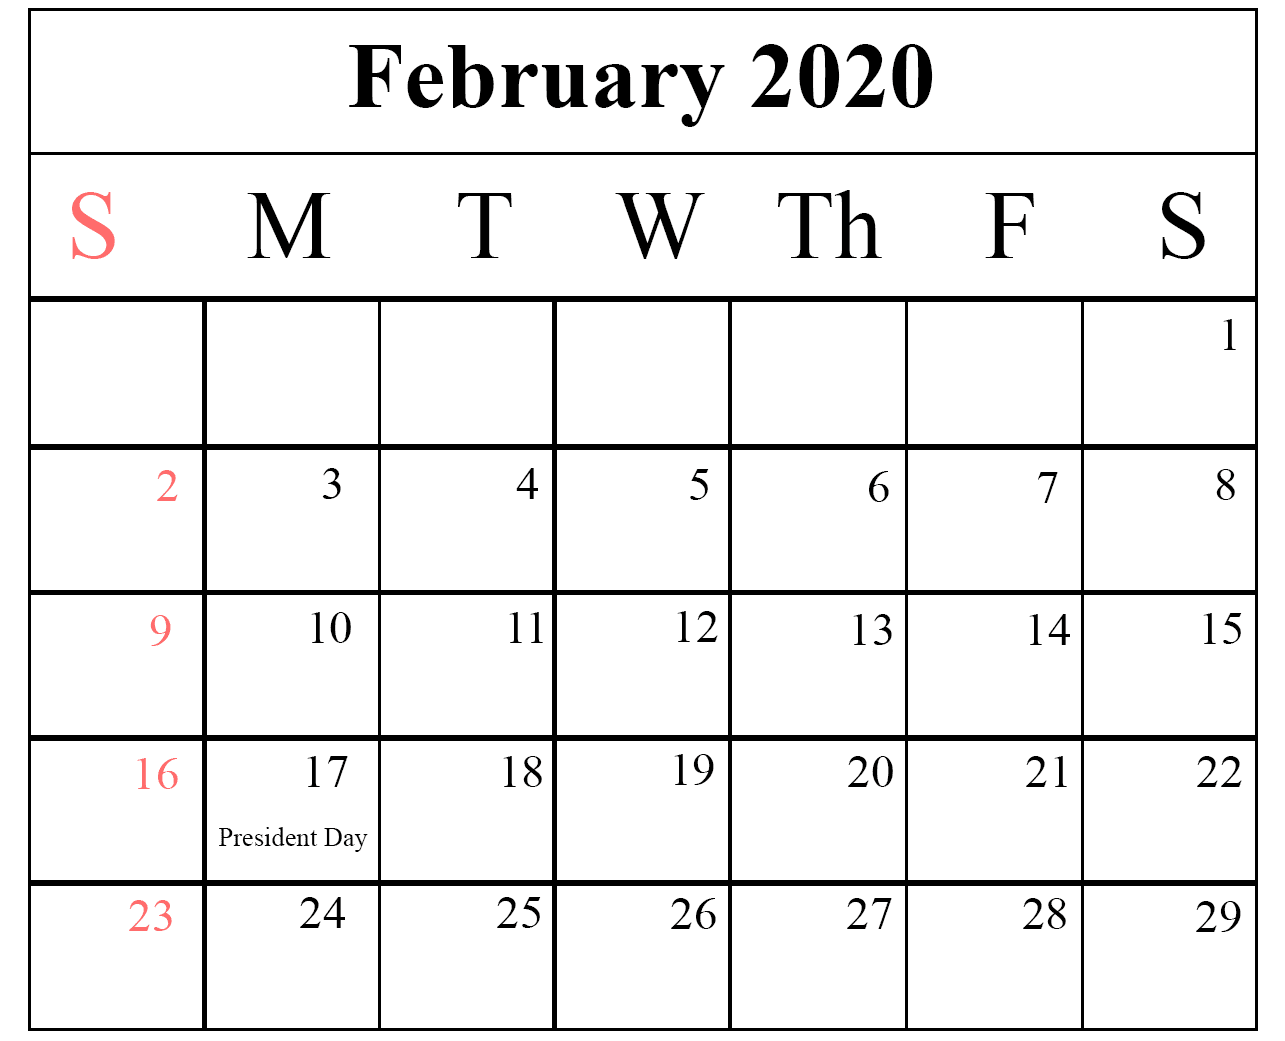 February Holidays 2020 Calendar Template